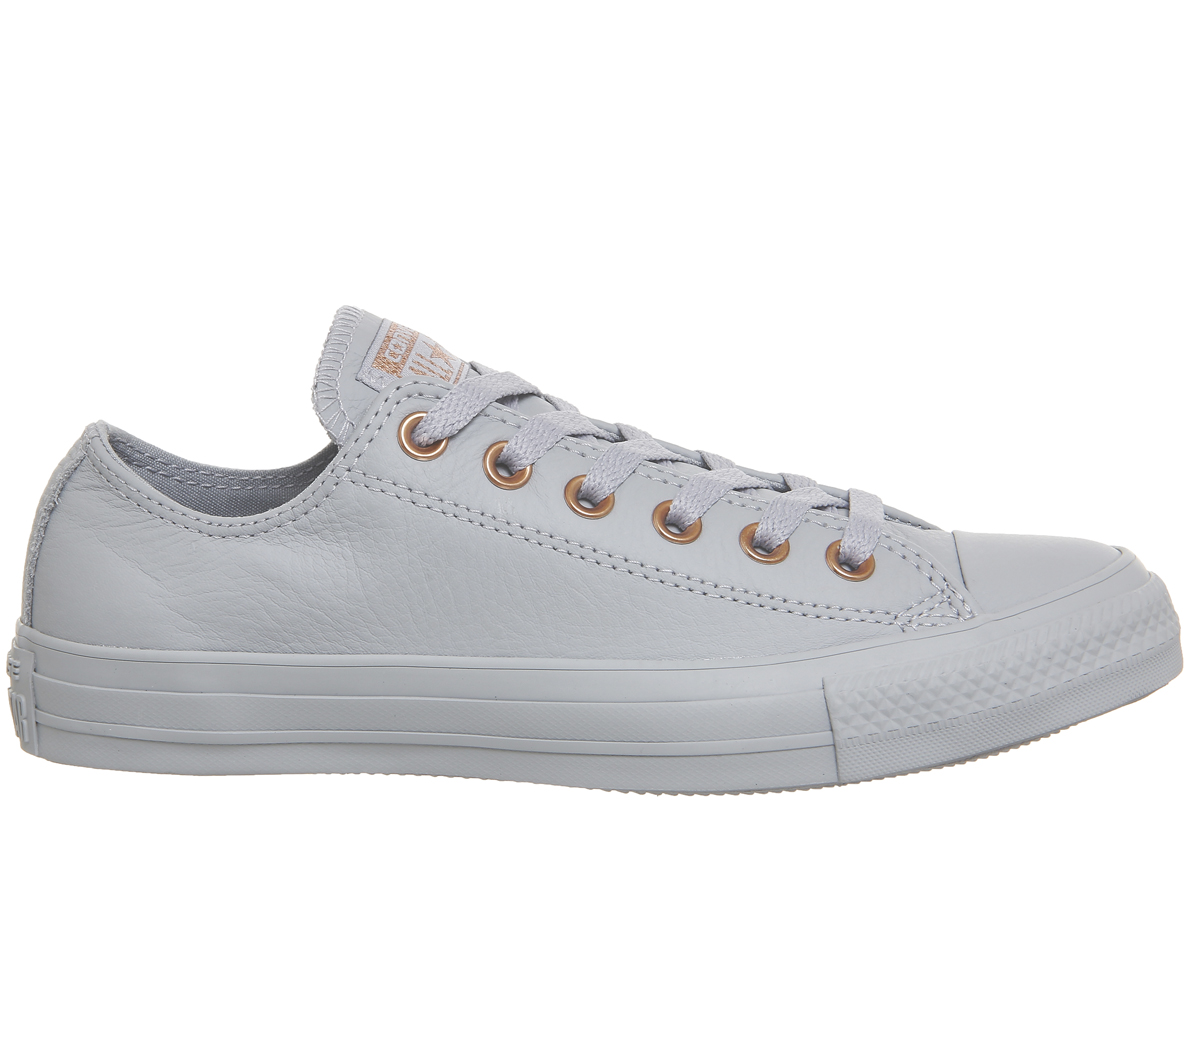 7702ce319bd4b0 Sentinel Womens Converse All Star Low Leather WOLF GREY BLUSH GOLD  EXCLUSIVE Trainers Sho